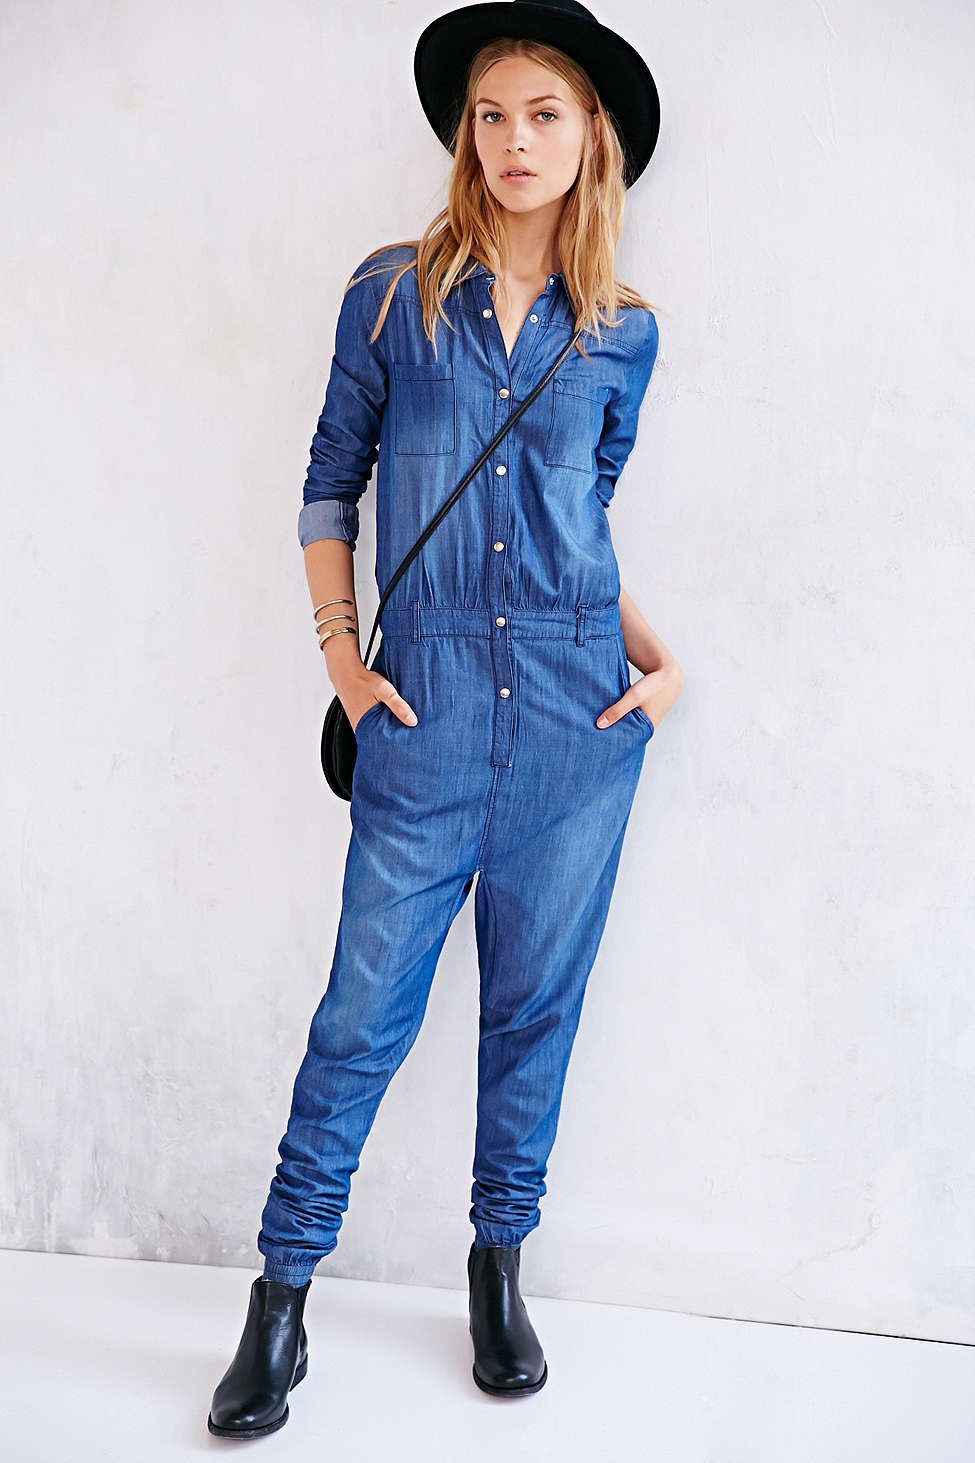 845cc60acc03 One Teaspoon Chambray Defender Utility Jumpsuit